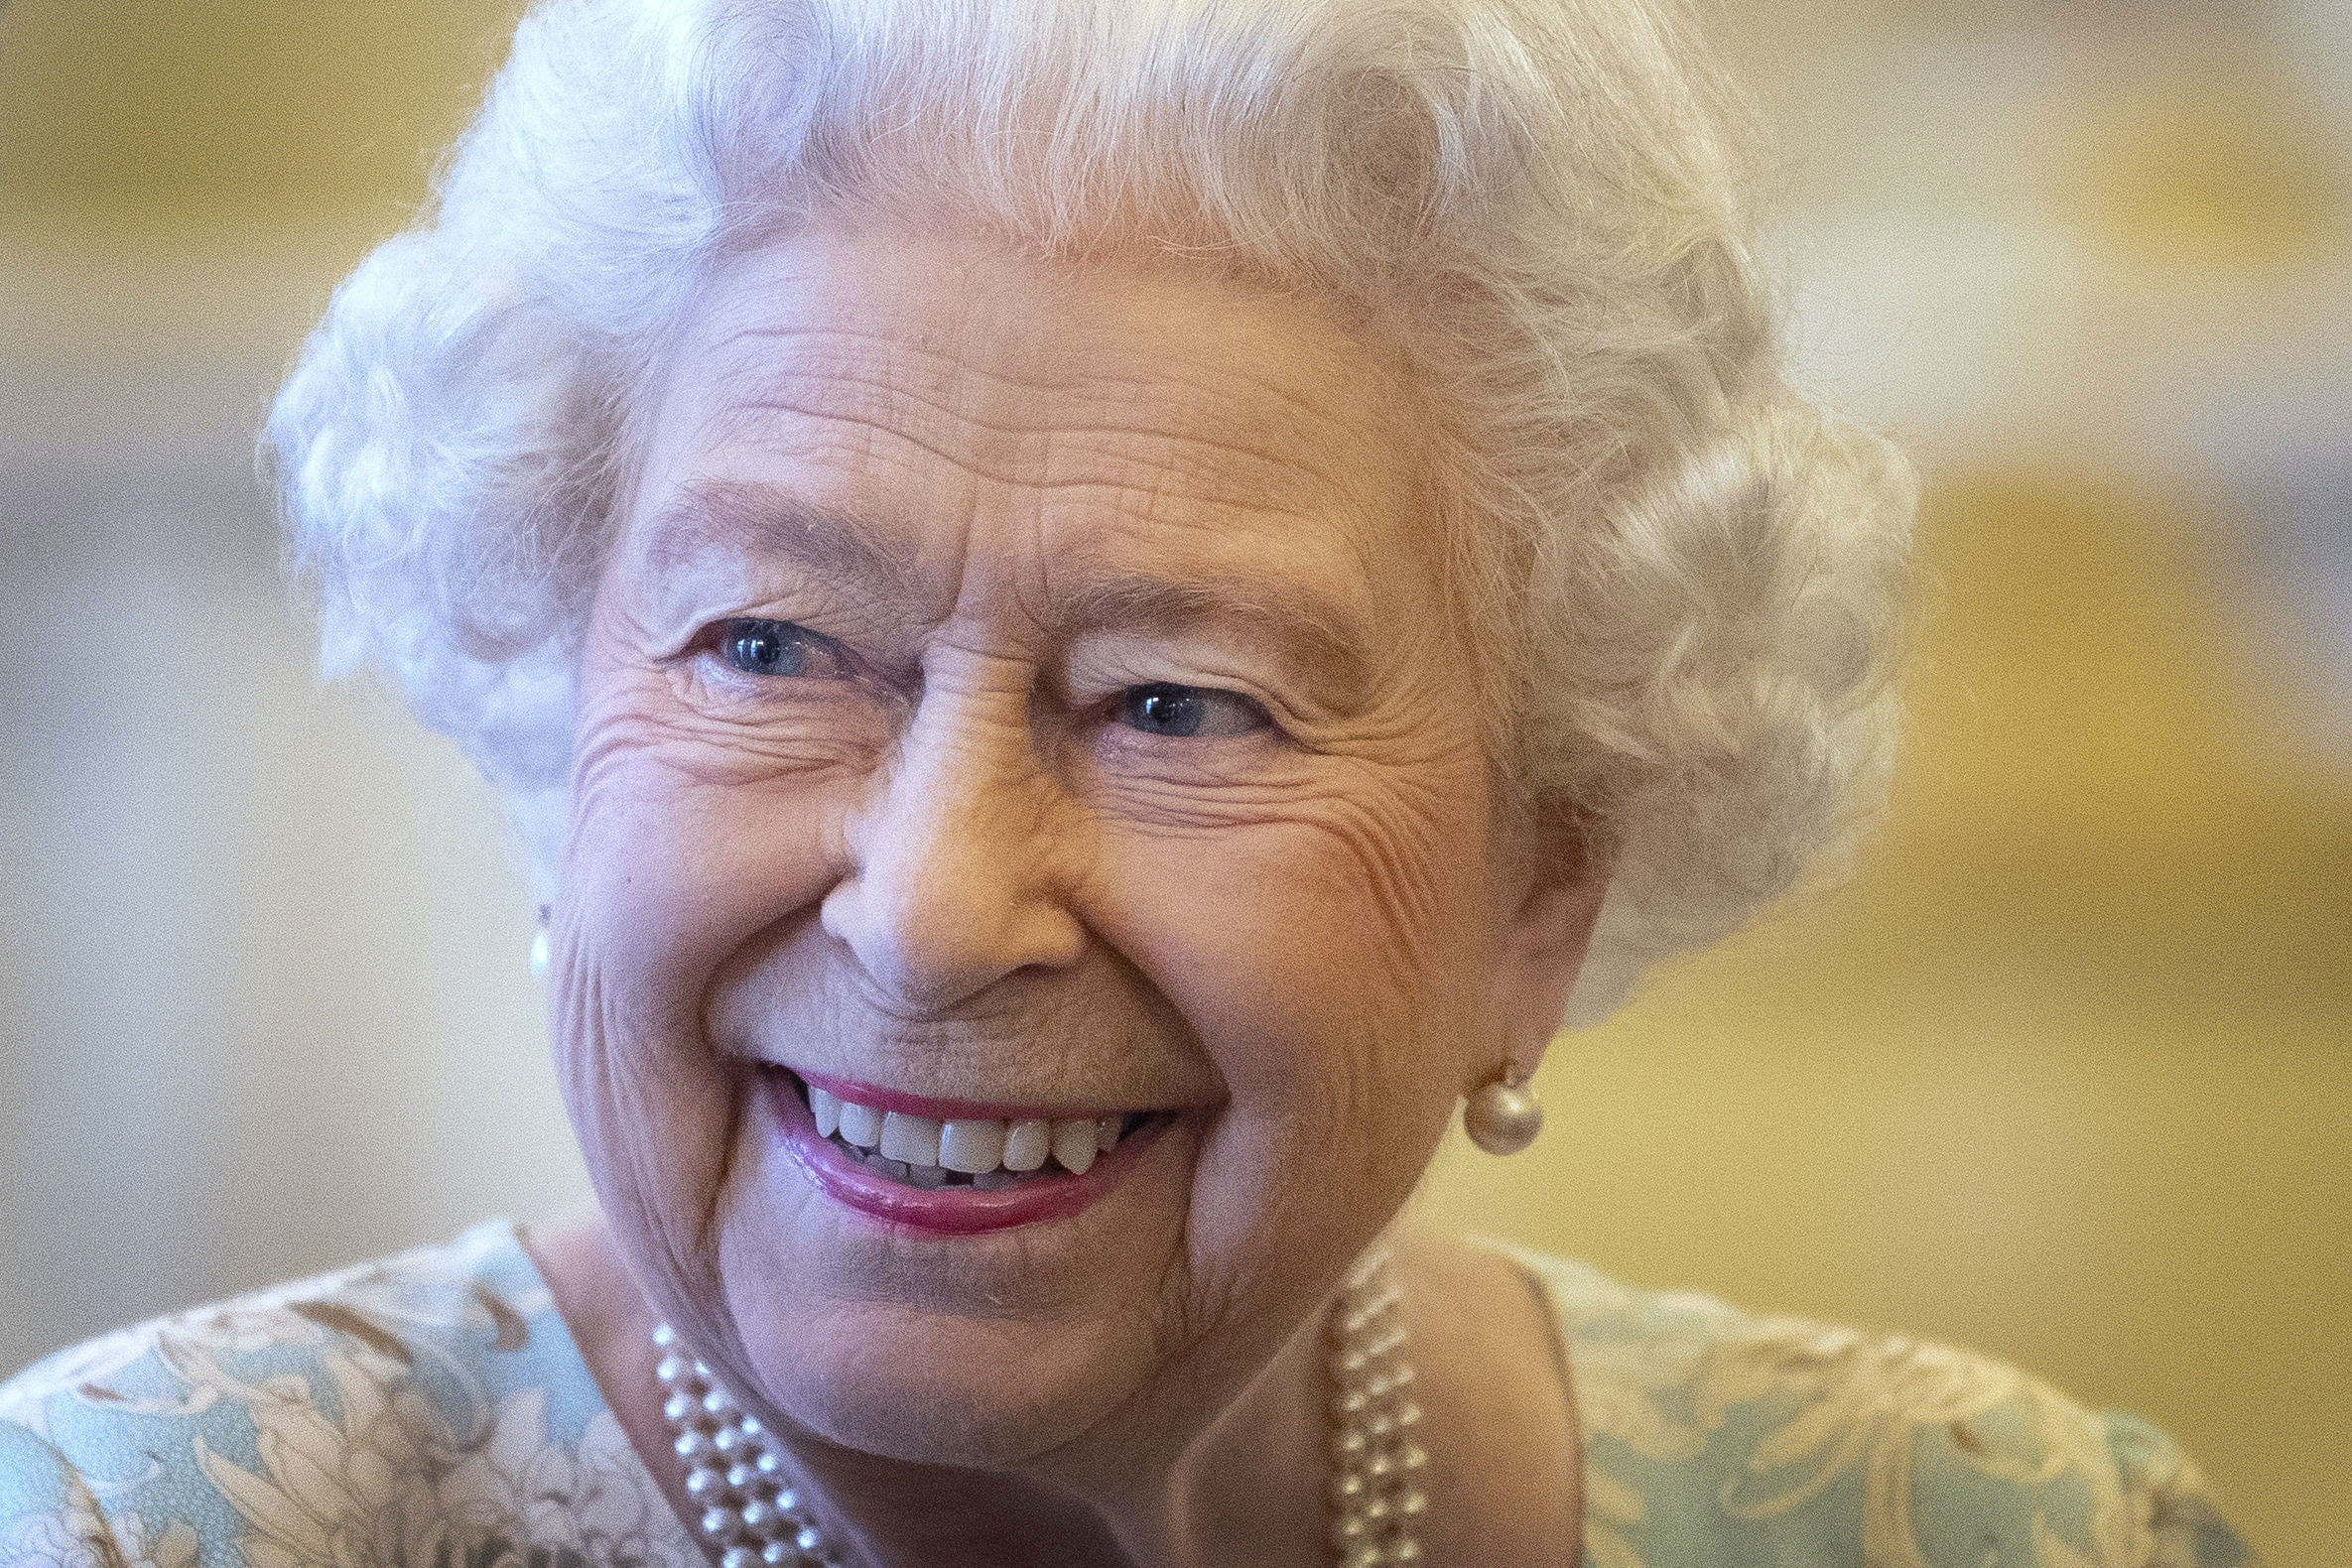 Are you looking for a job? Queen Elizabeth II asks for personal assistant for Buckingham Palace